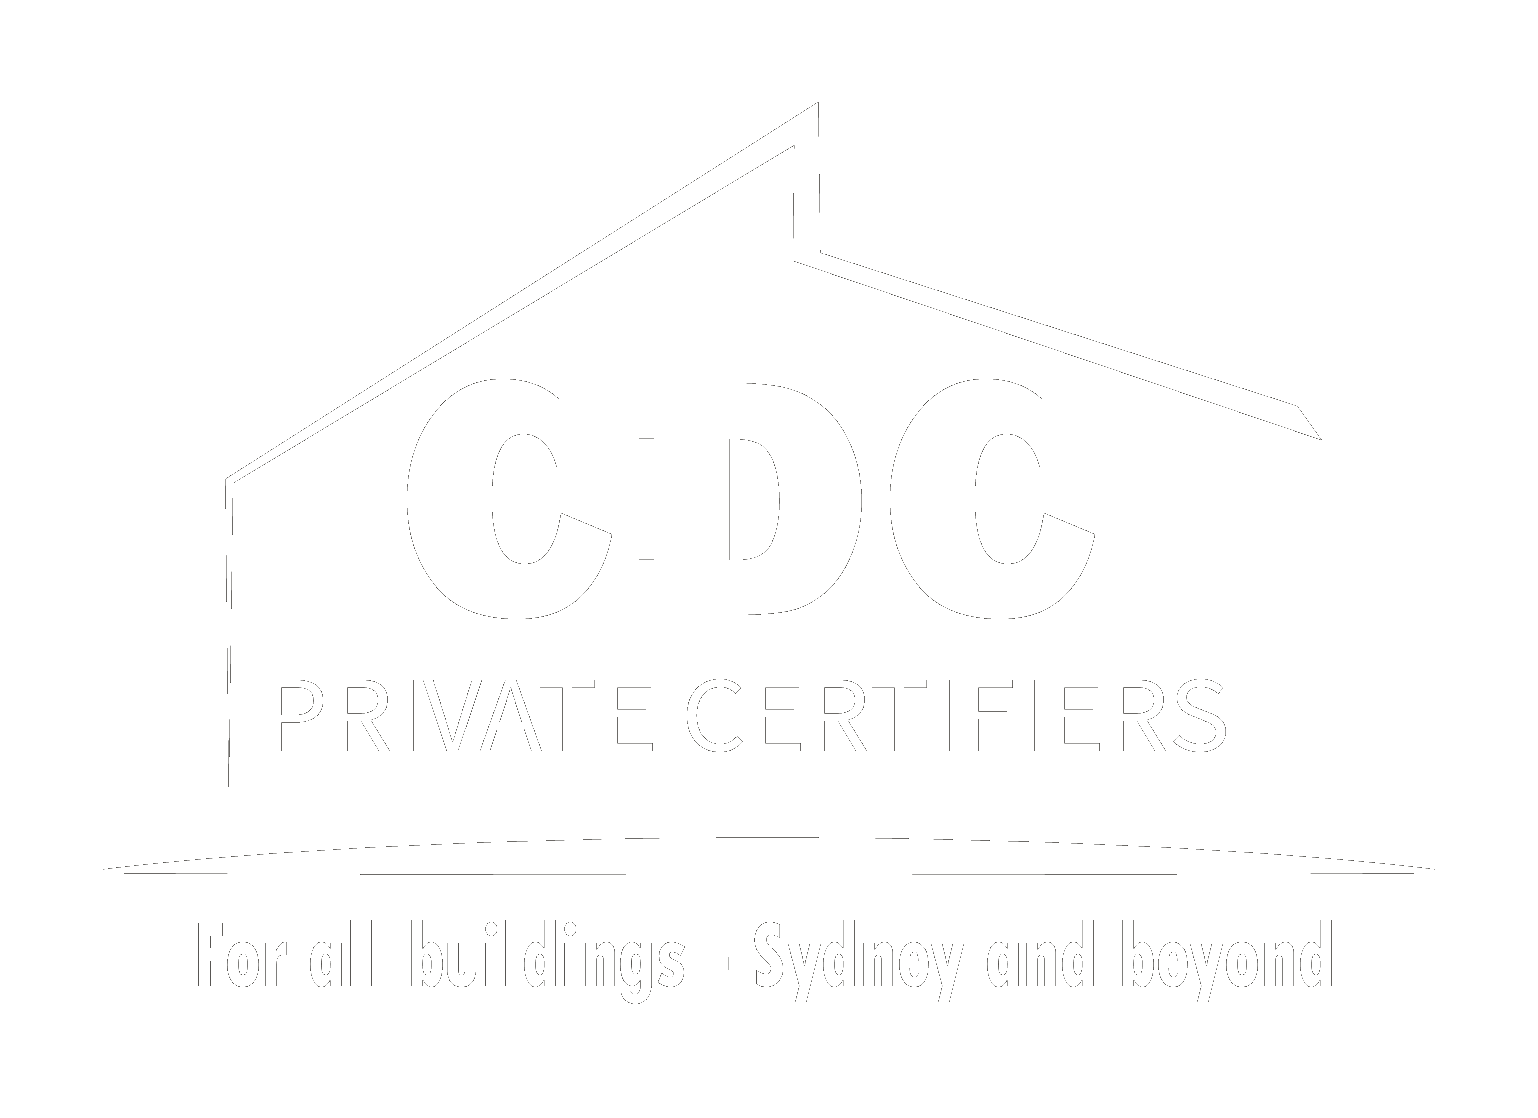 CDC Private Certifiers